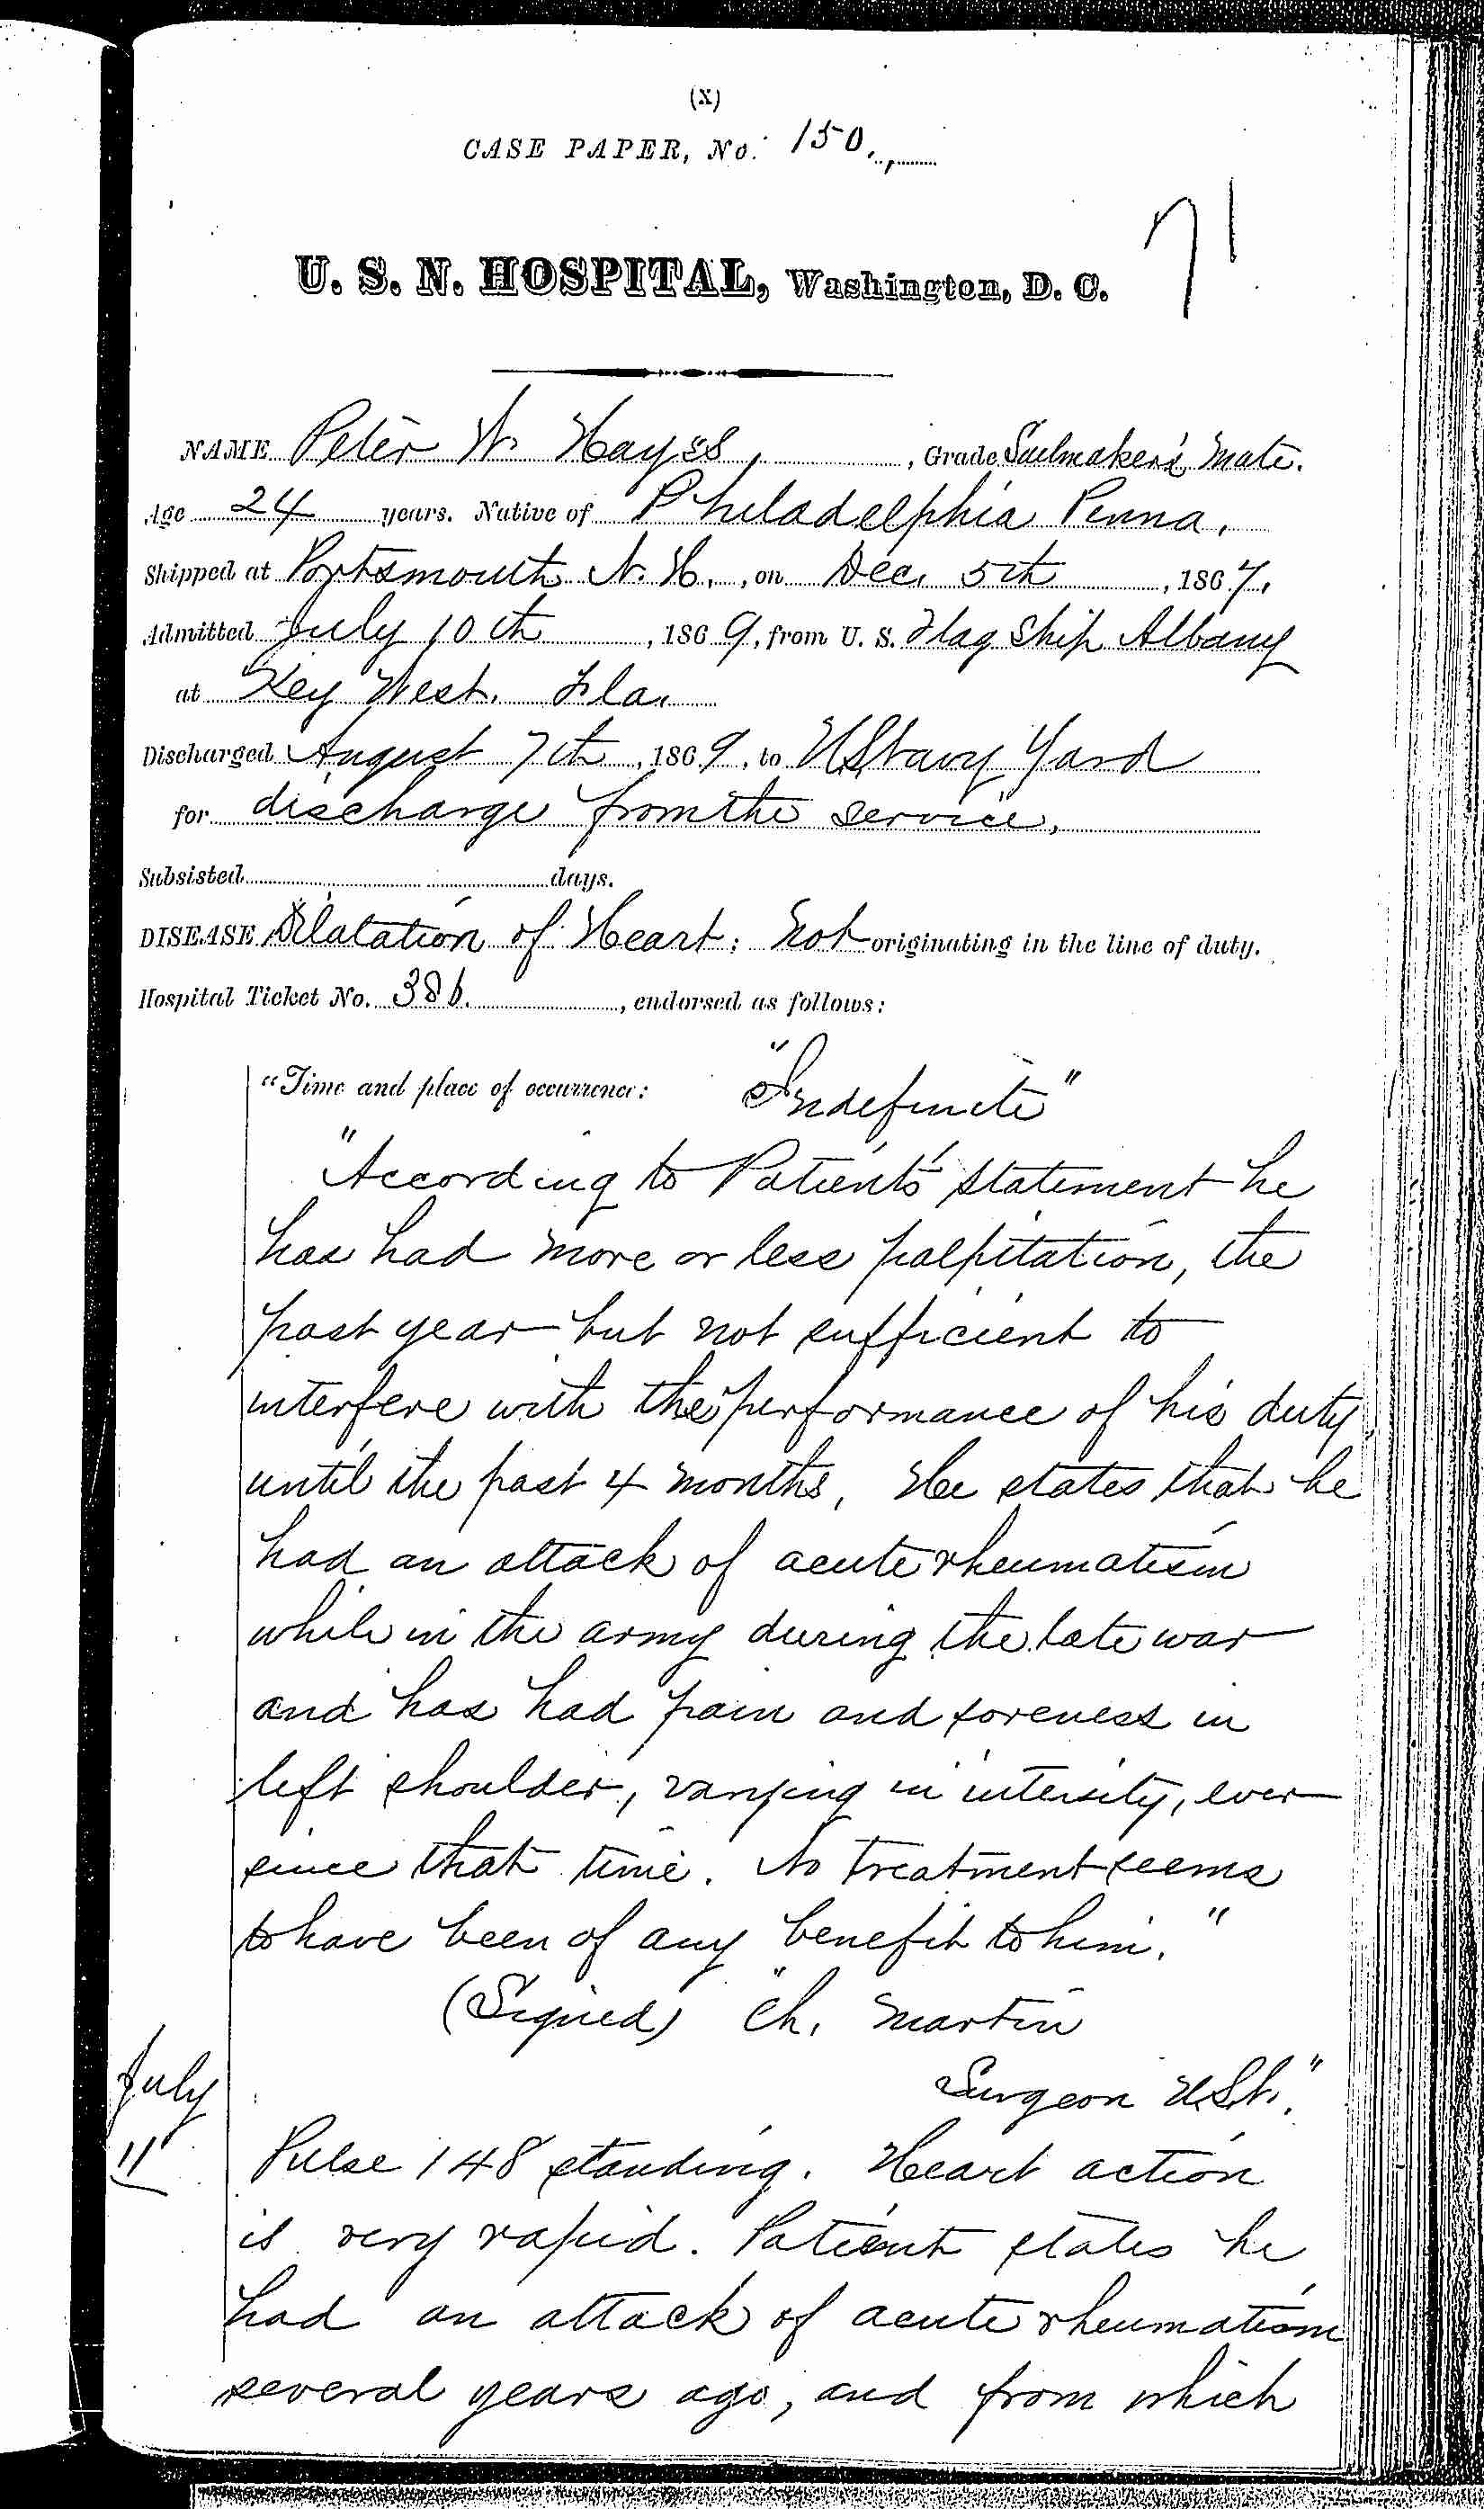 Entry for Peter W. Hayes (page 1 of 4) in the log Hospital Tickets and Case Papers - Naval Hospital - Washington, D.C. - 1868-69